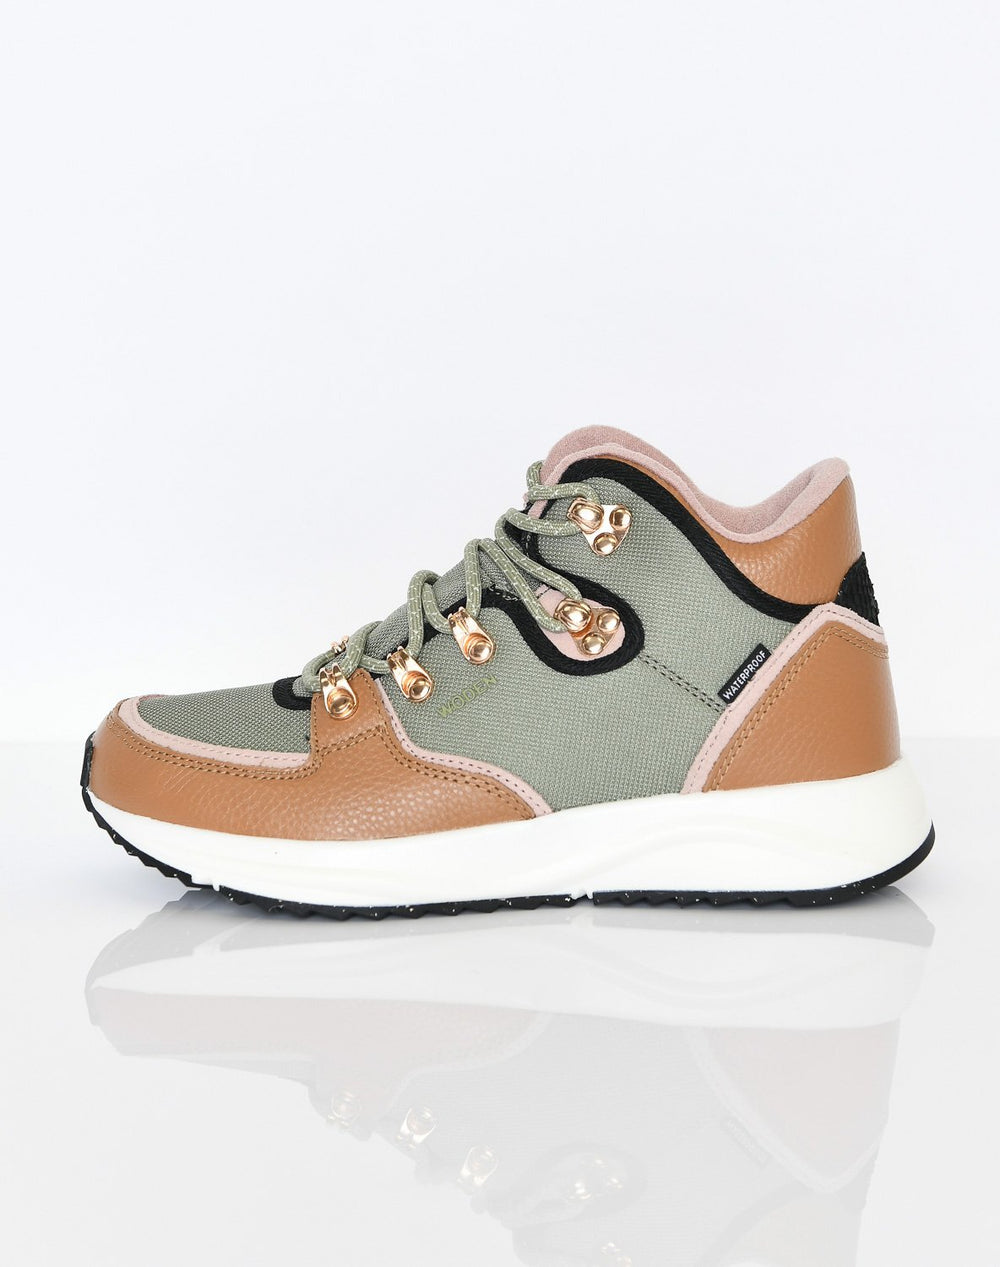 Woden Mille waterproof fifty shoes dusty olive - Online-Mode